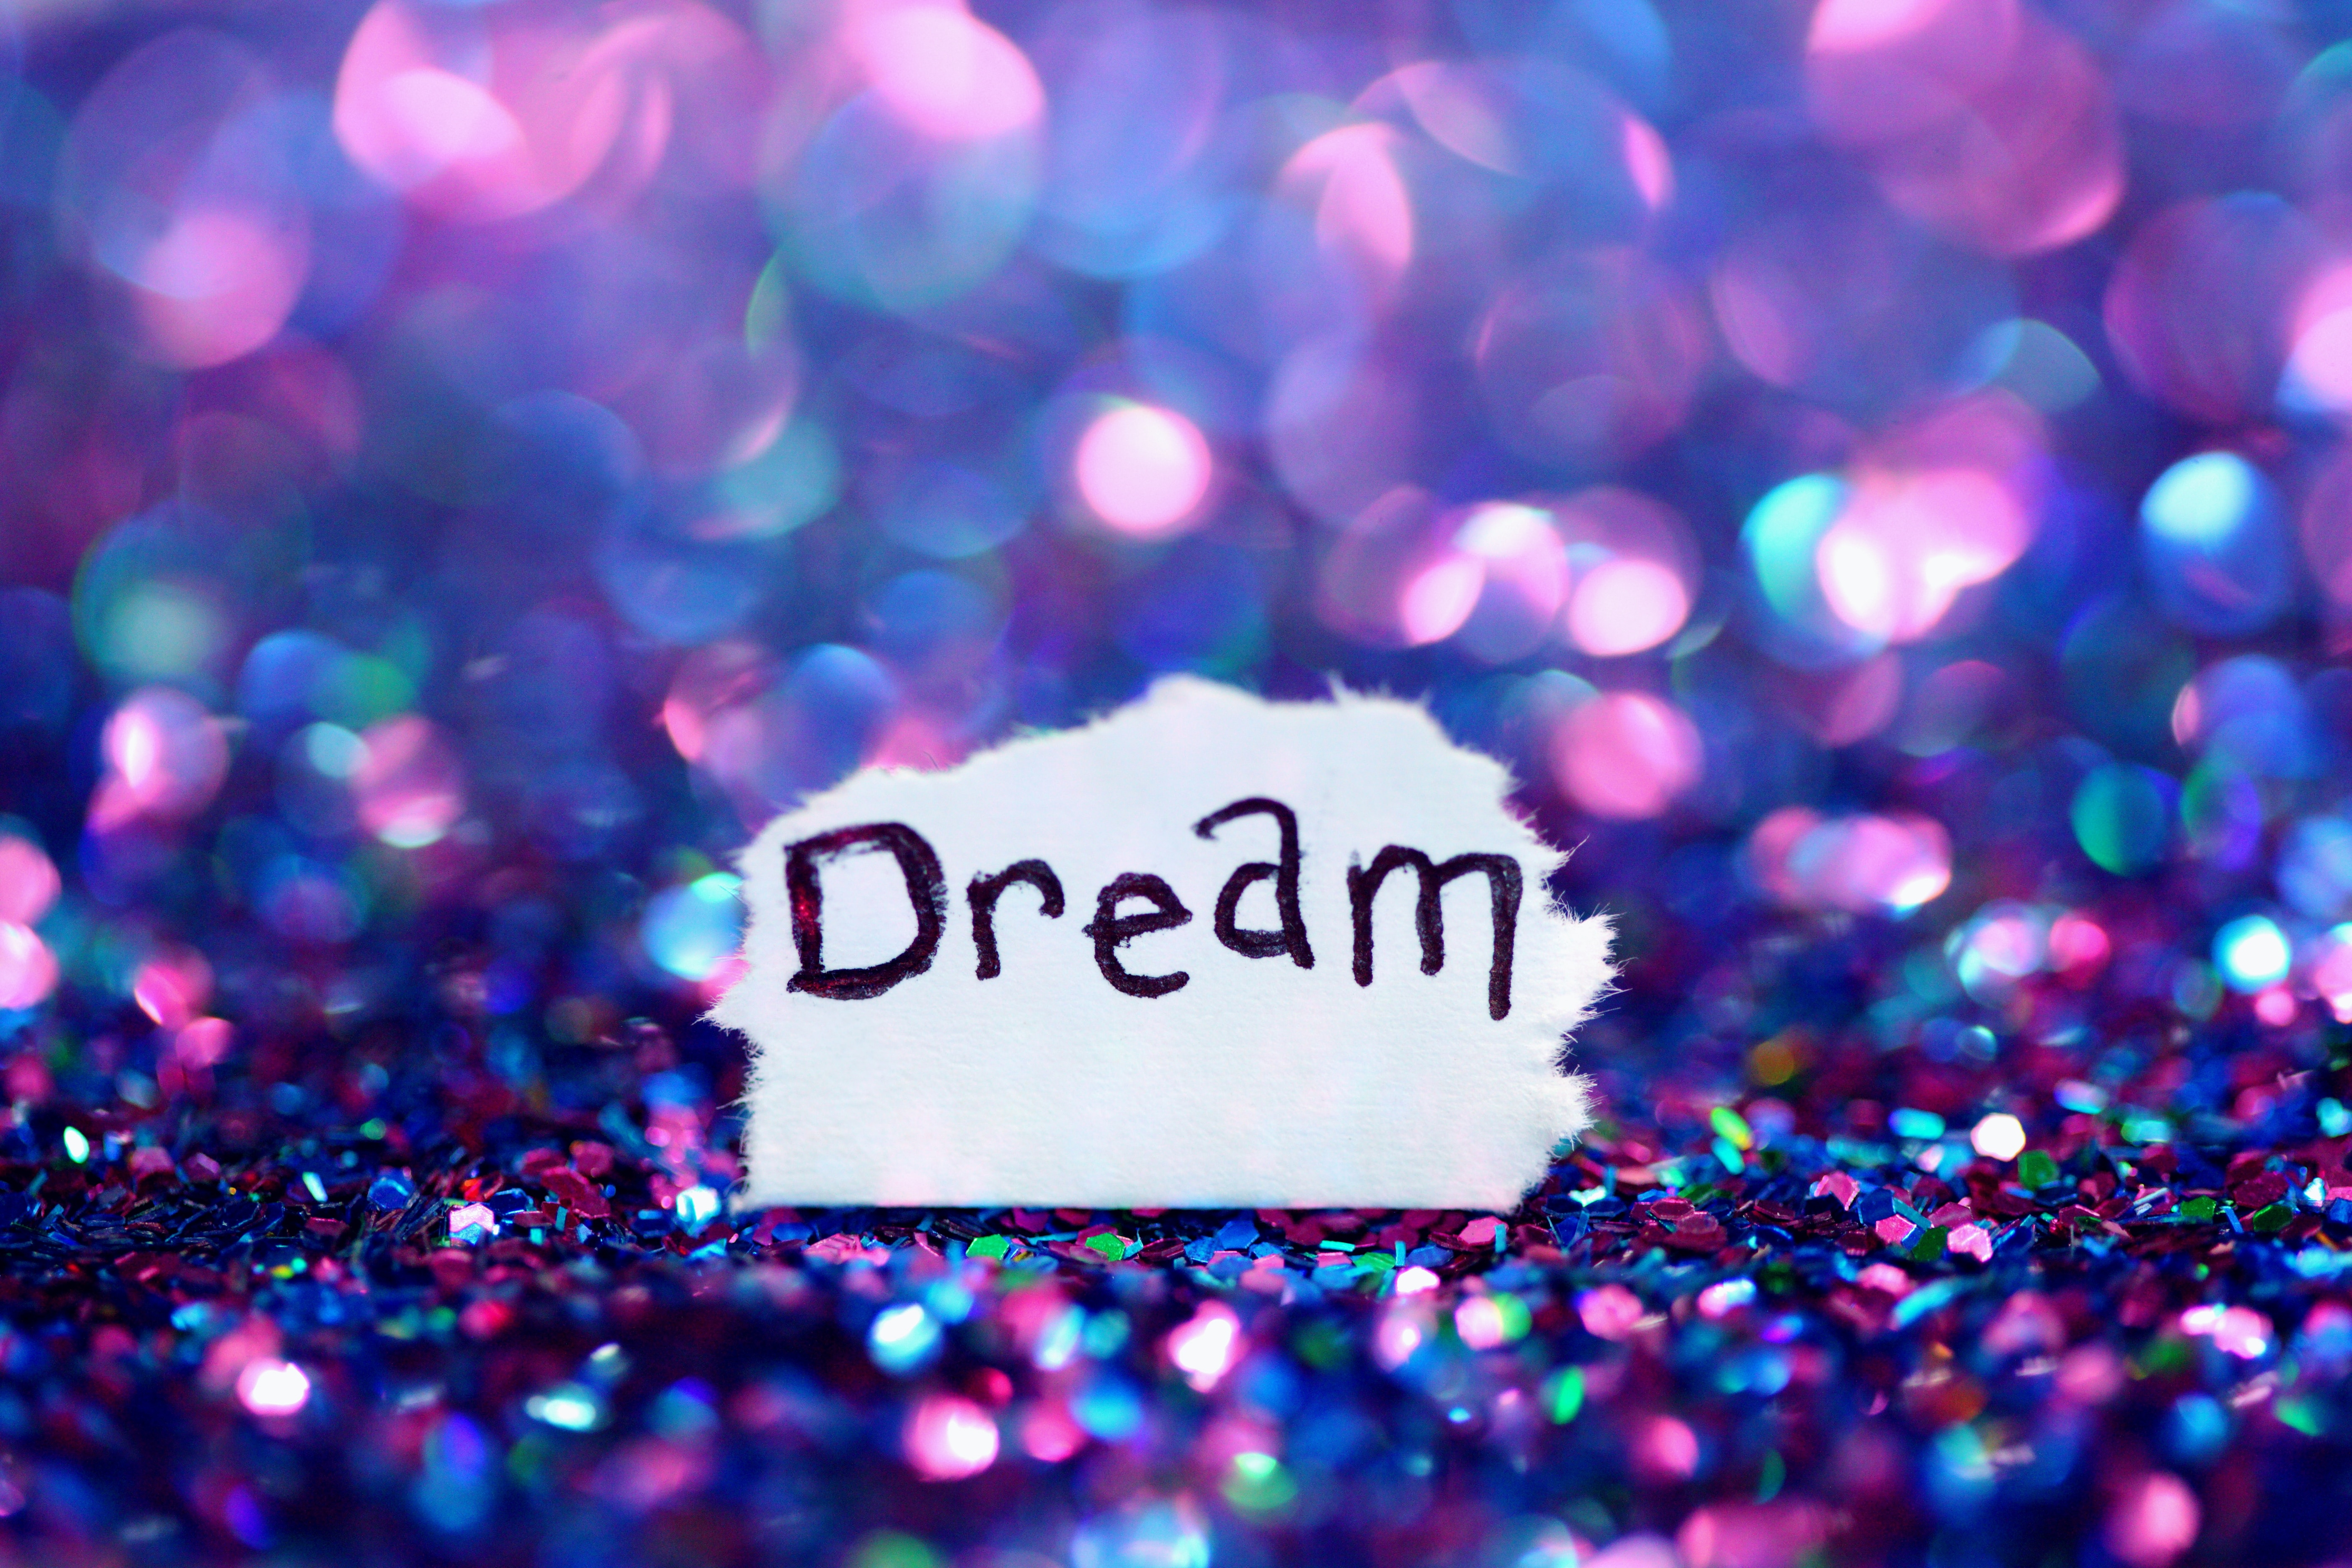 How To Make Your Dreams Become Your Reality